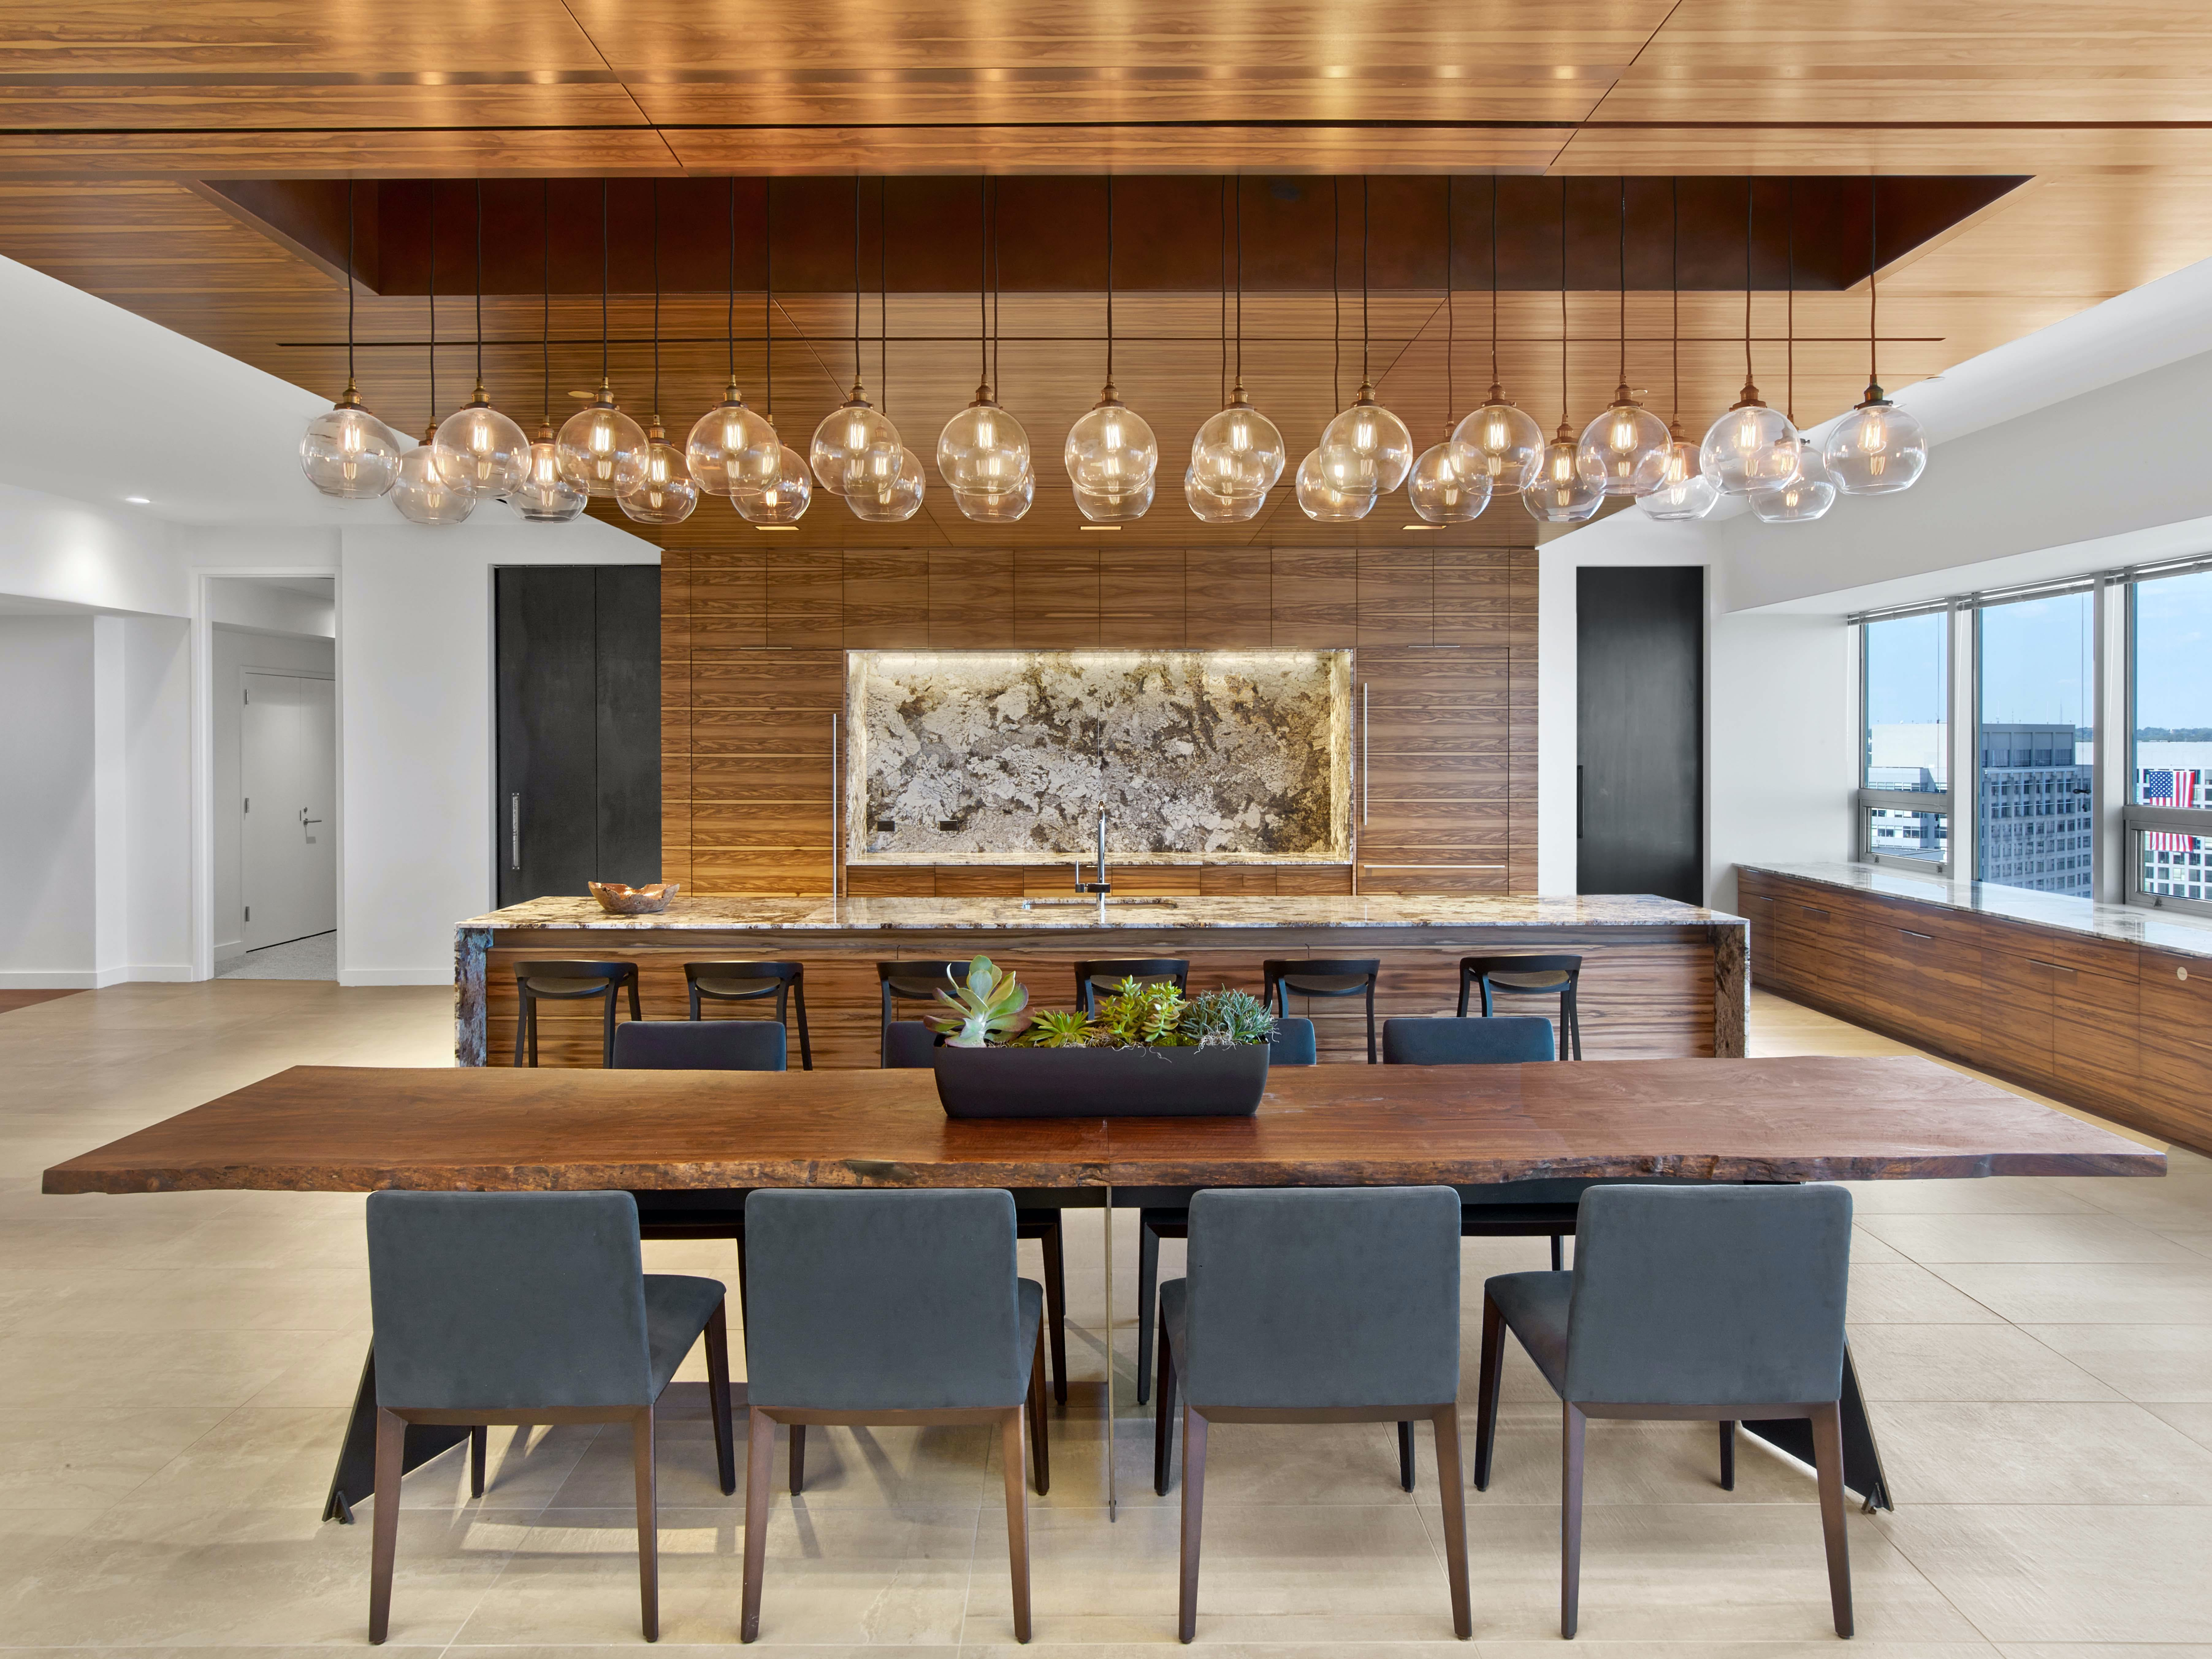 otj architects experiences continued growth and success in 2016